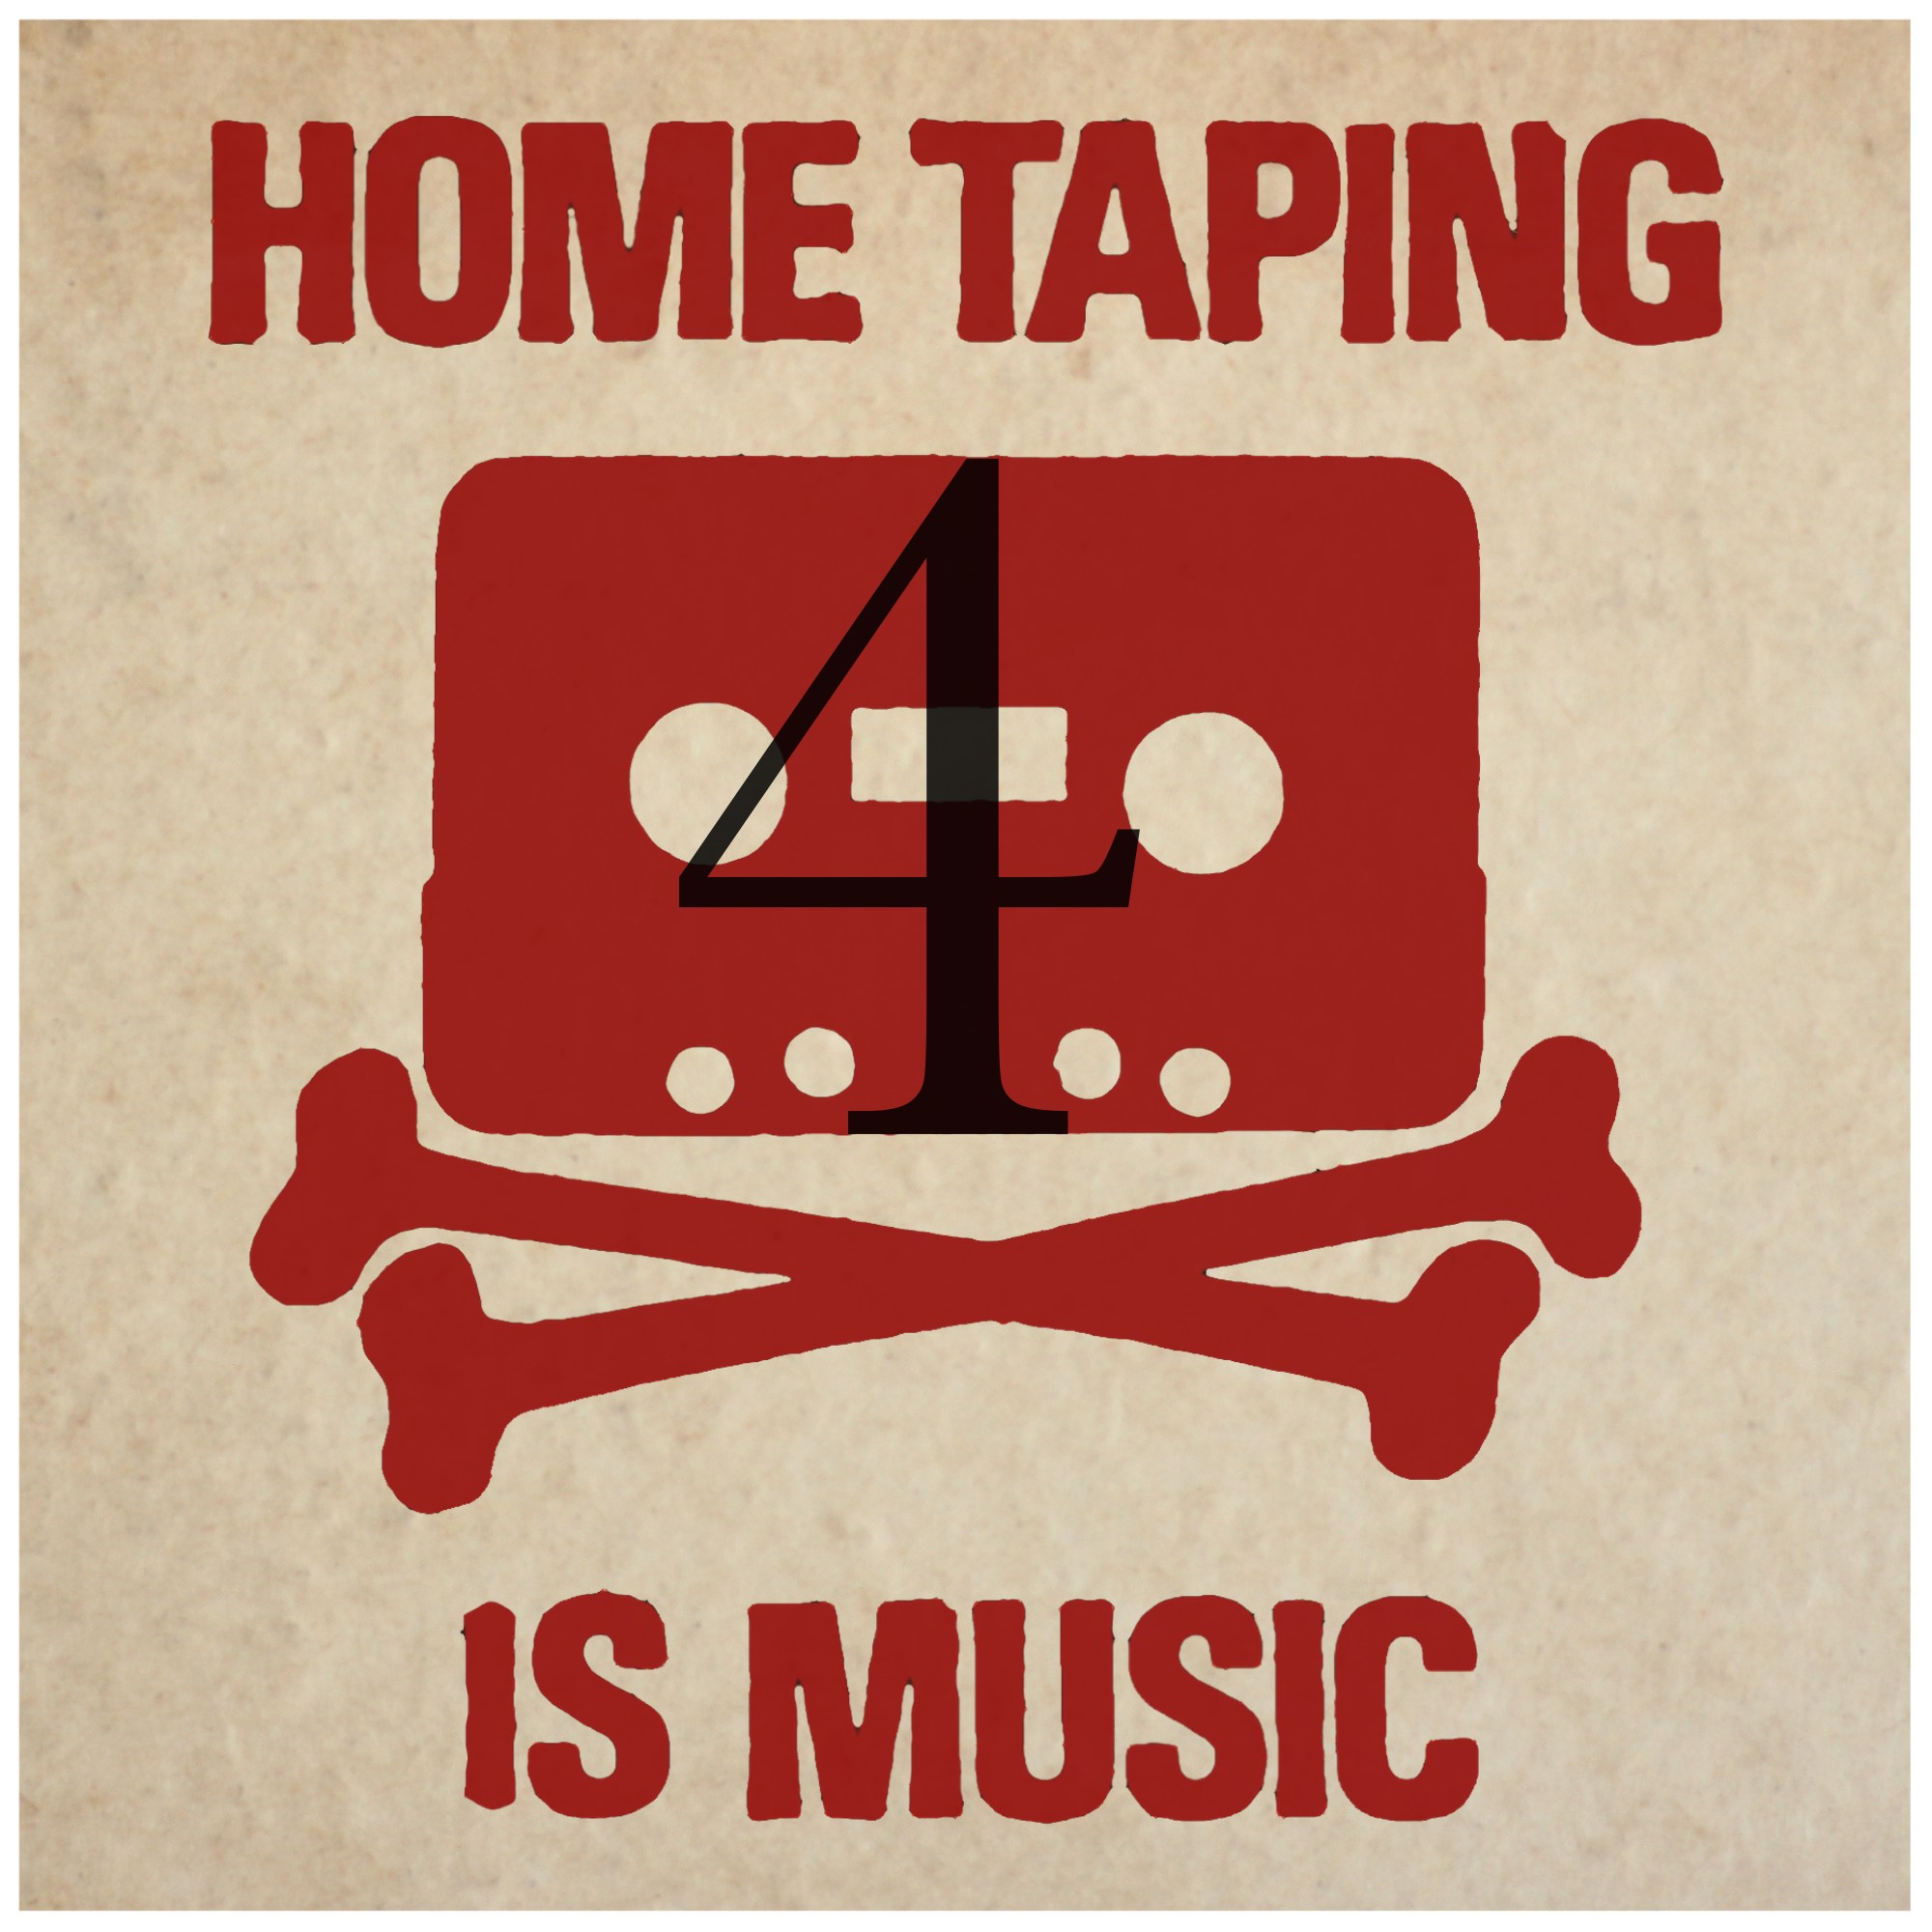 HOME TAPING IS MUSIC 4